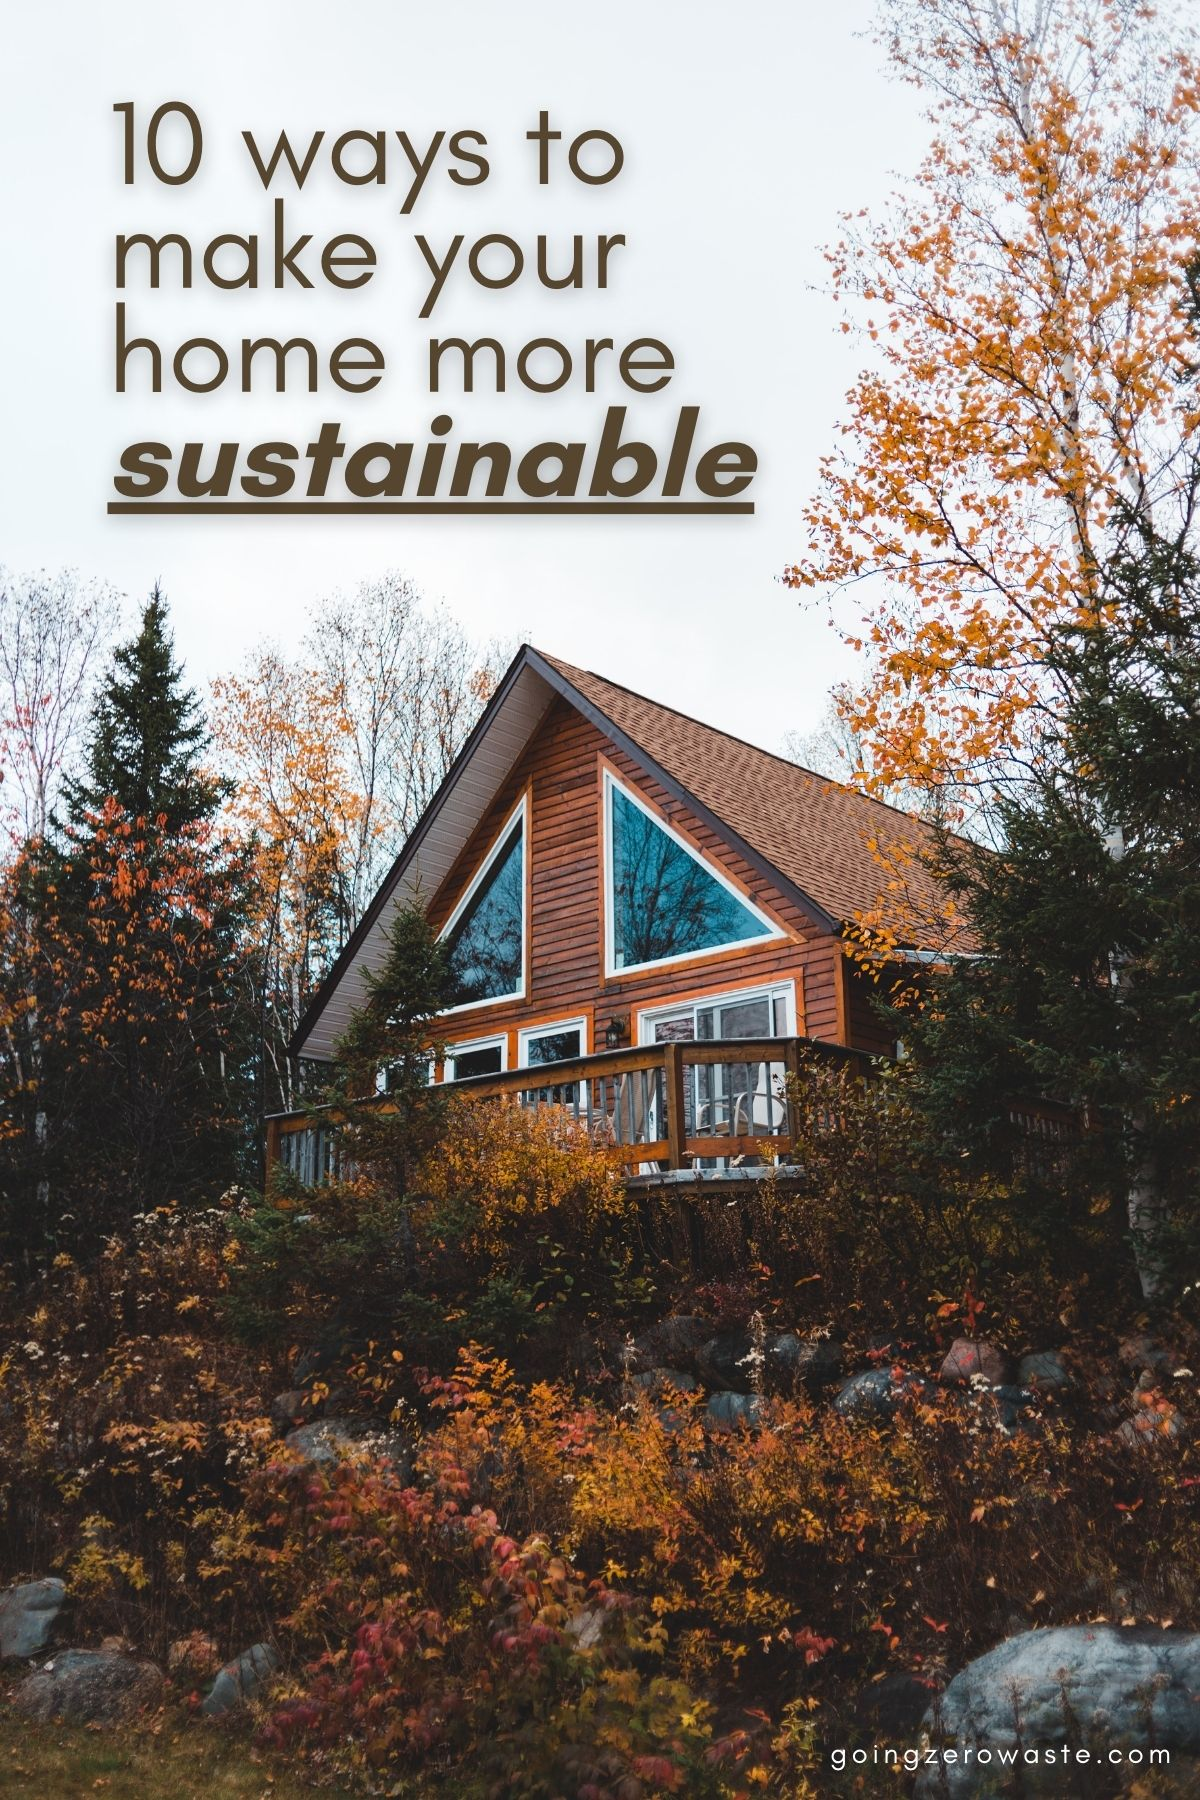 10 Ways to Make Your Home More Sustainable